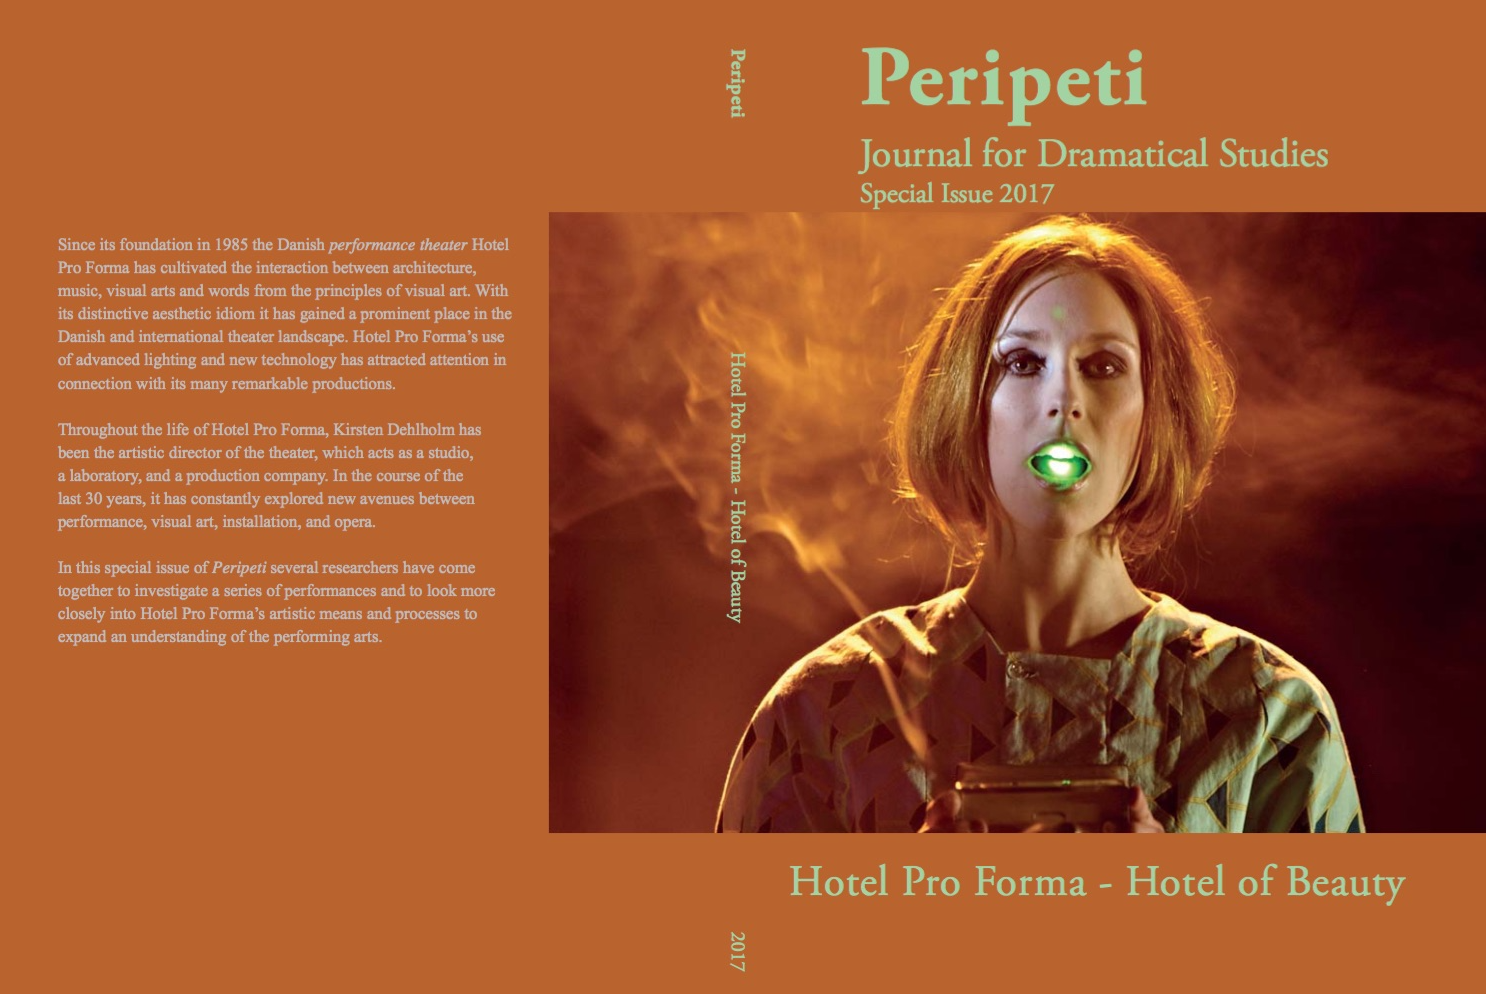 Se Årg. 14 Nr. 26.5 (2017): Hotel Pro Forma - Hotel of Beauty. A Laboratory for Performing Arts